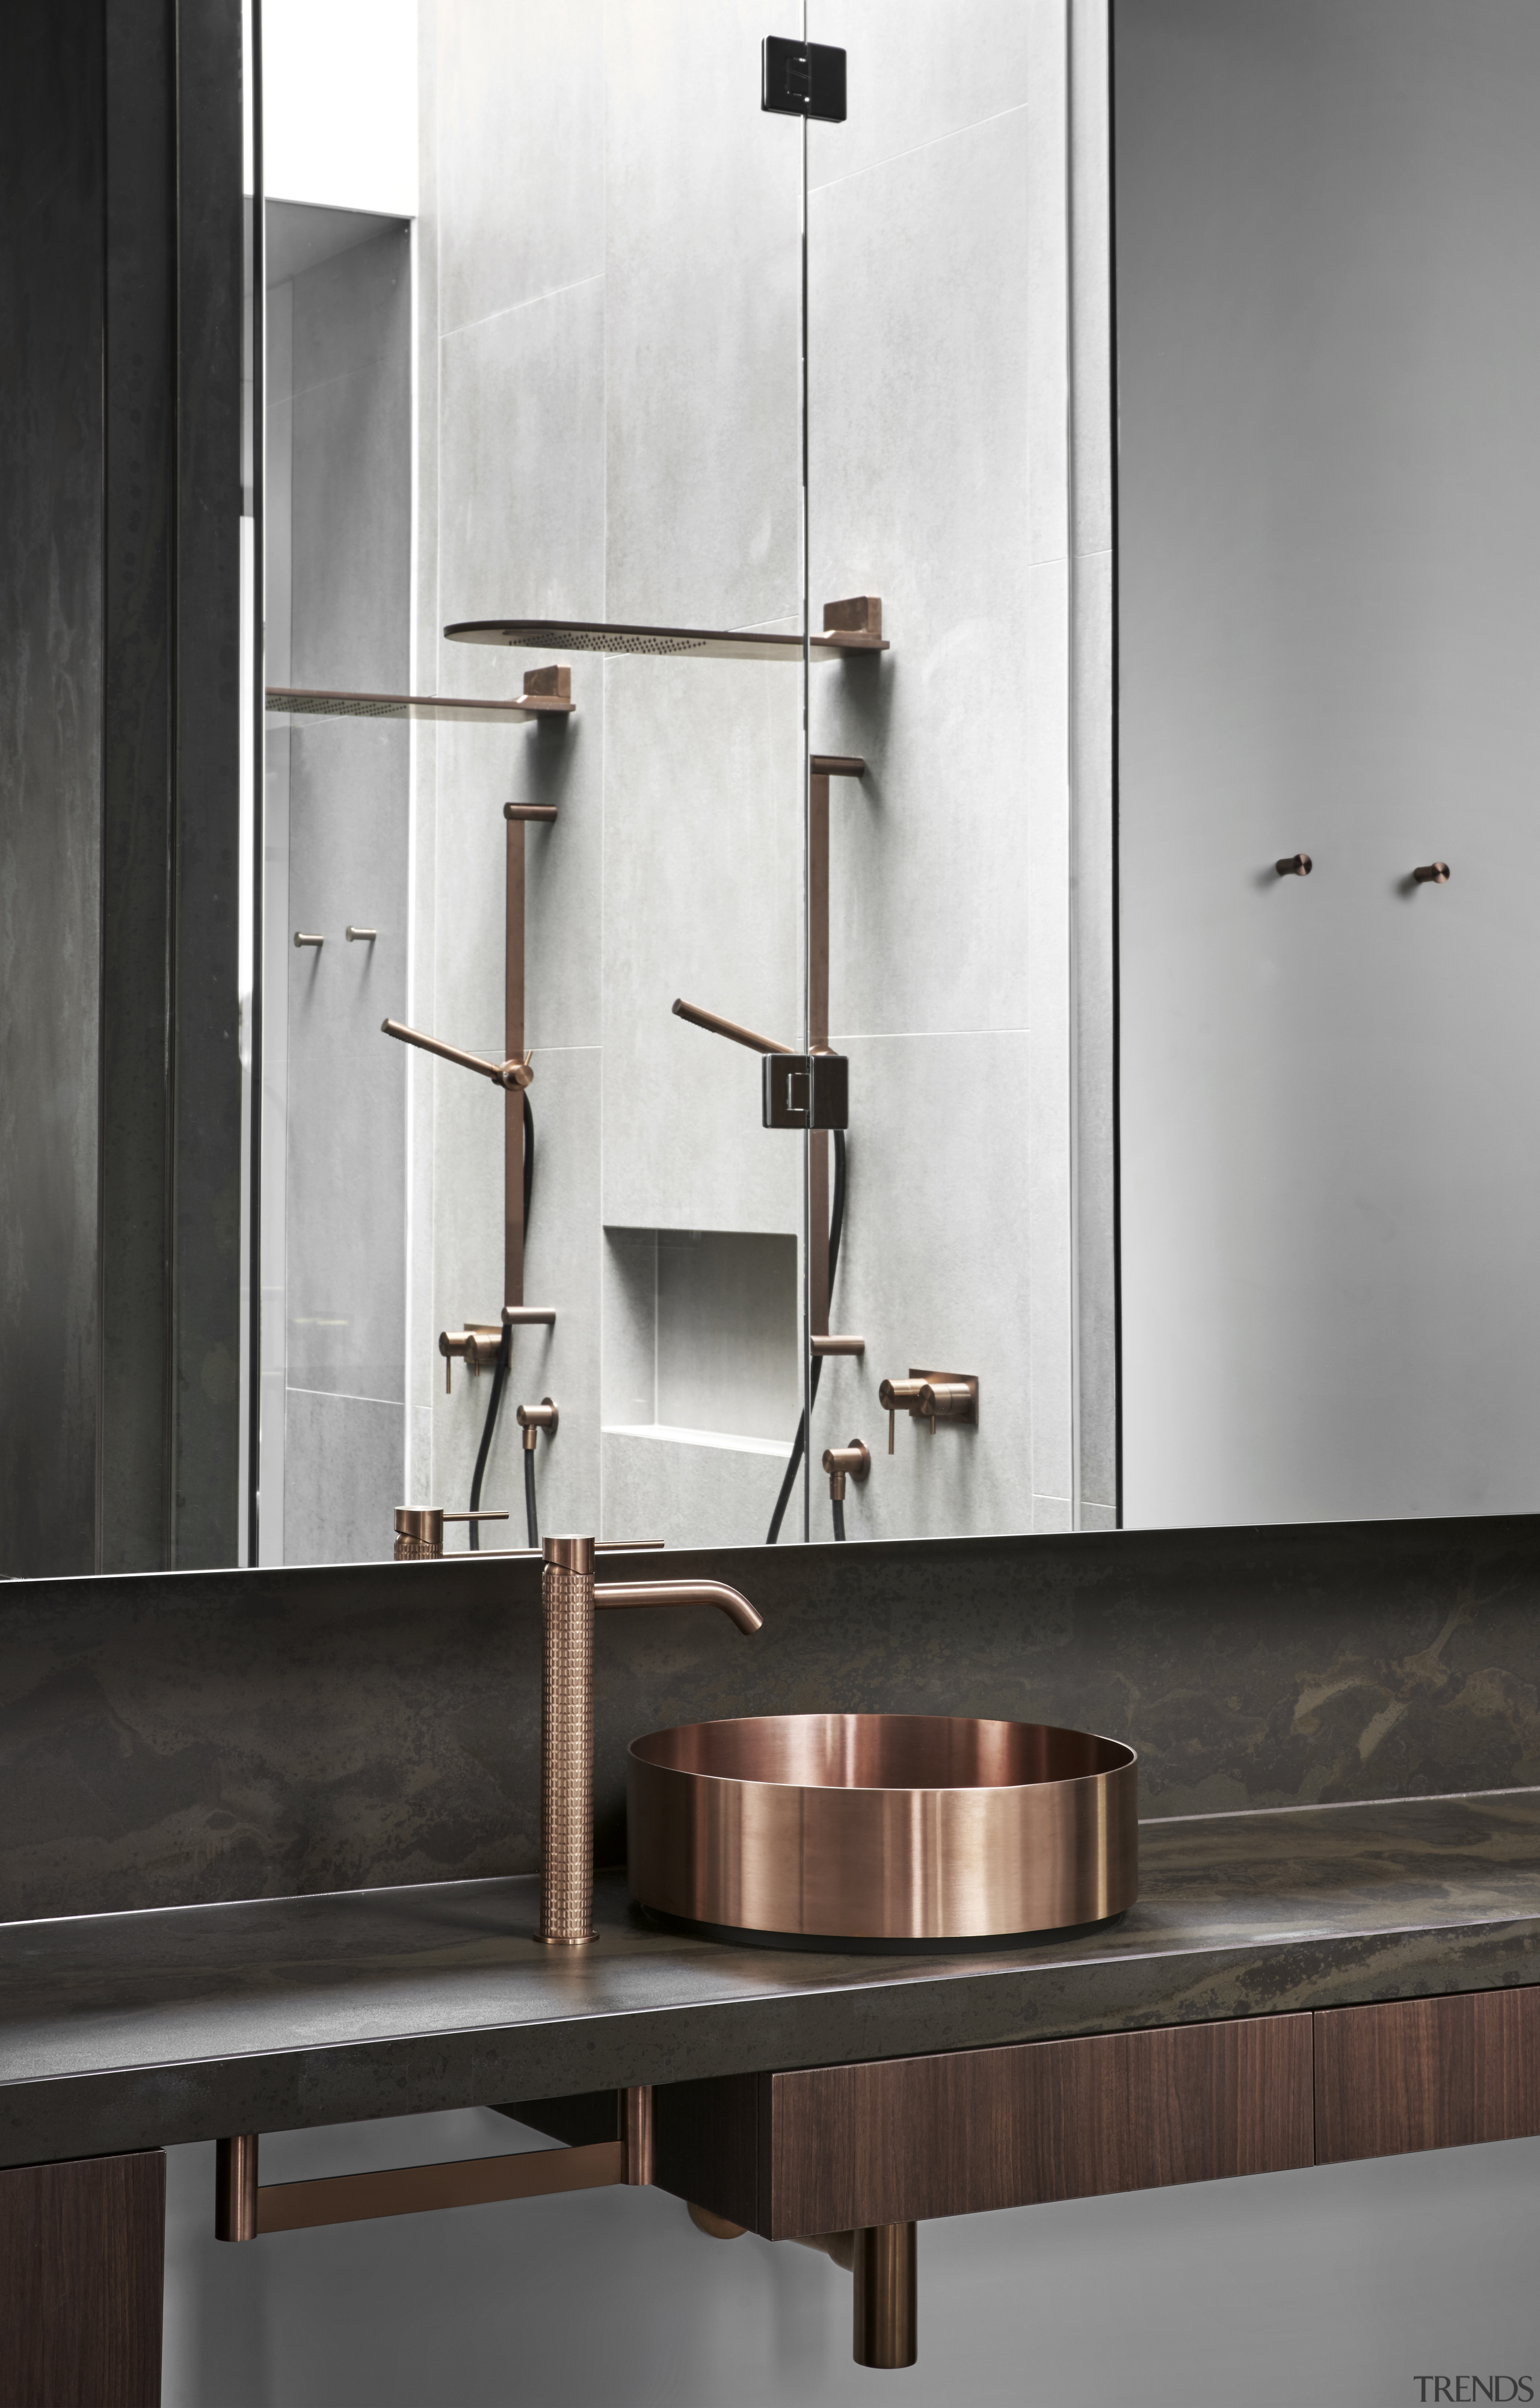 Copper finishes on stainless steel tapware and basins